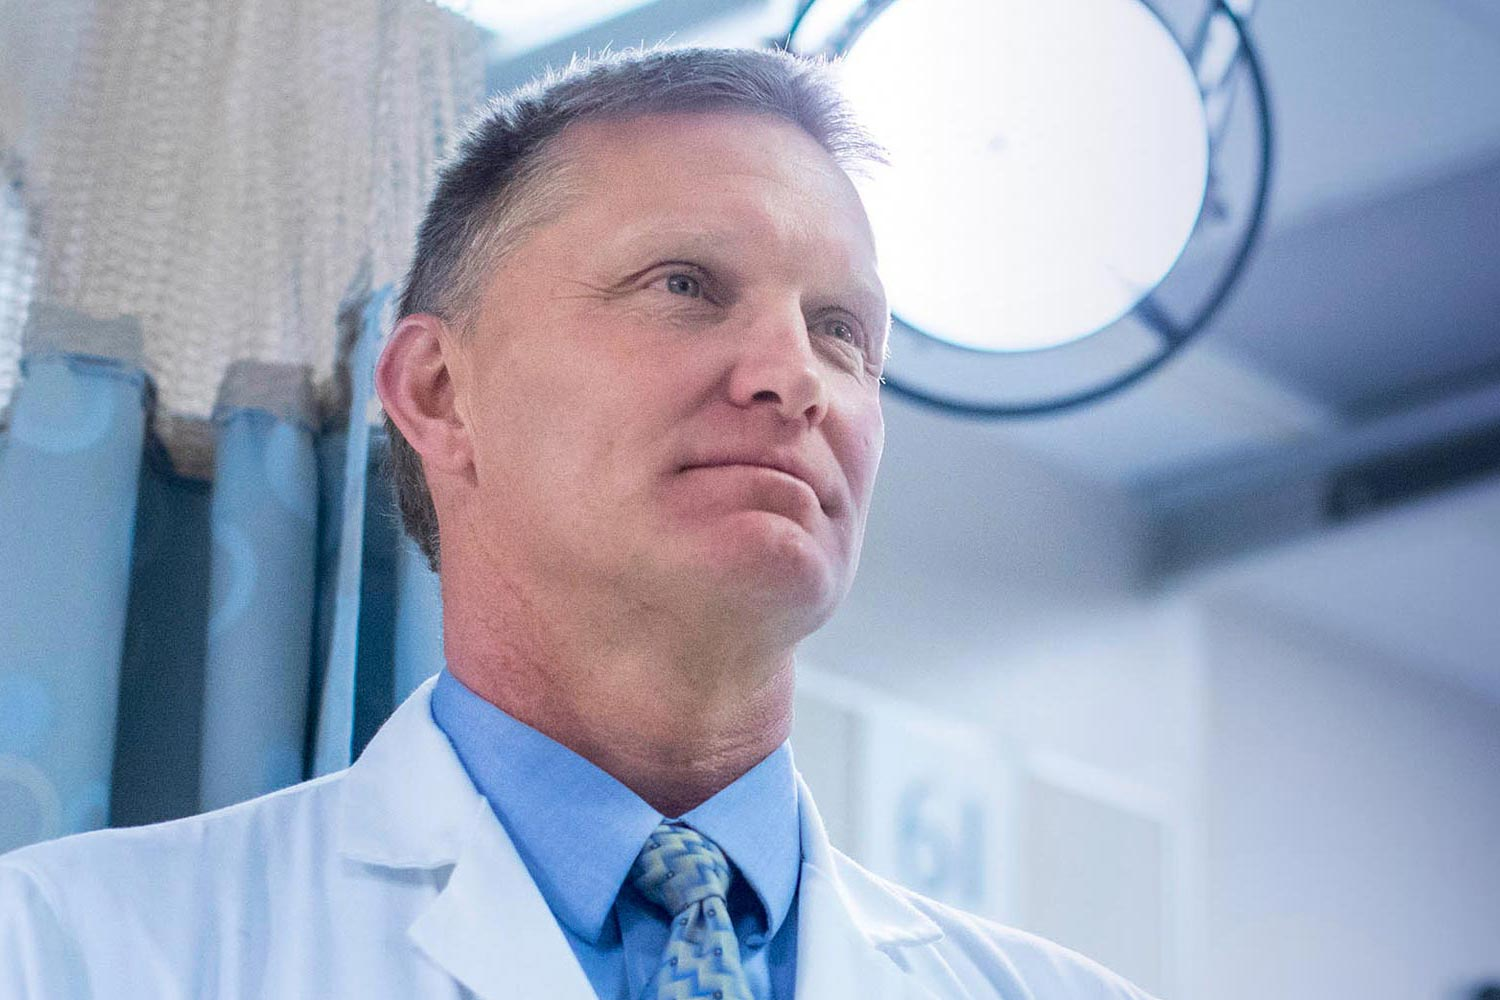 Dr. Christopher Holstege is medical director of the Blue Ridge Poison Center, director of the Elson Student Health Center and chief of UVA's Division of Medical Toxicology.